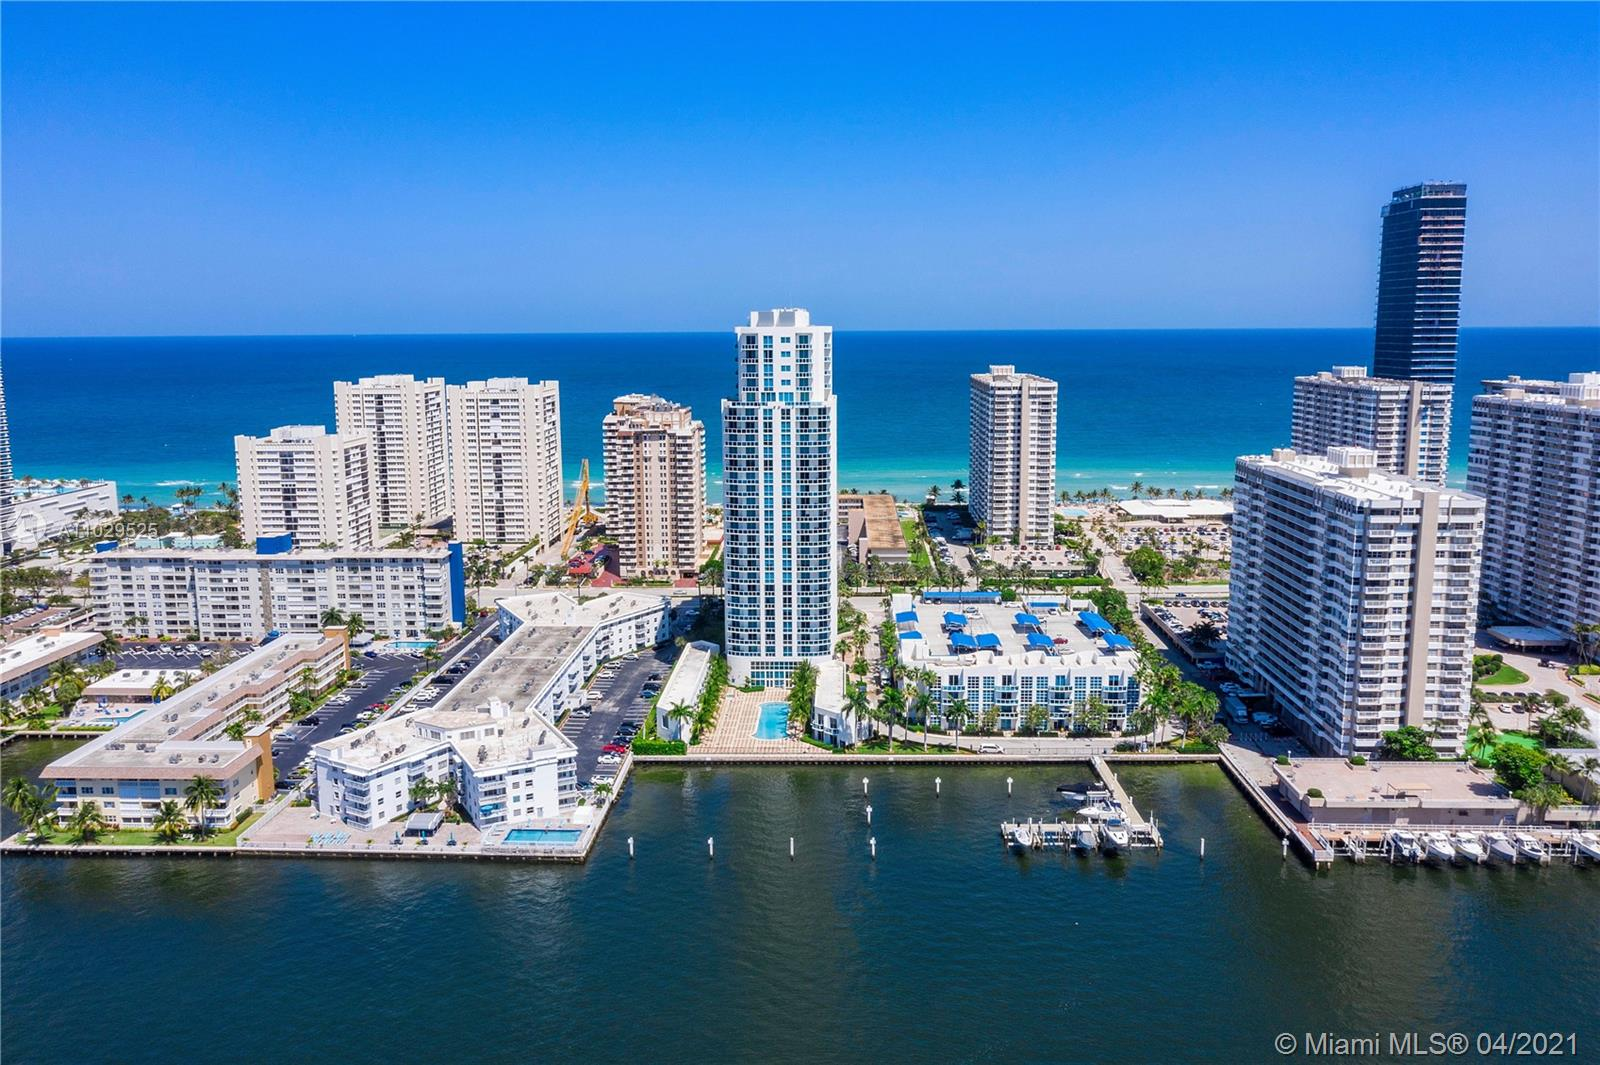 RARE ON THE MARKET!! LARGEST FLOOR PLAN!!  SE EXPOSURE, EBEST LINE  UNIT 24TH FLOOR, AMAZING OCEAN VIEWS AND INTRACOASTAL VIEWS!! EASY TO SHOW!! GREAT BOUTIQUE BUILIDNG CALL NOW!! UNIT RENTED UNTIL OCTOBER 2021EXCELLENT TENANT YING $3500 A MONTH. CALL NOW DONT WAIT, MAKE YOUR OFFER!!